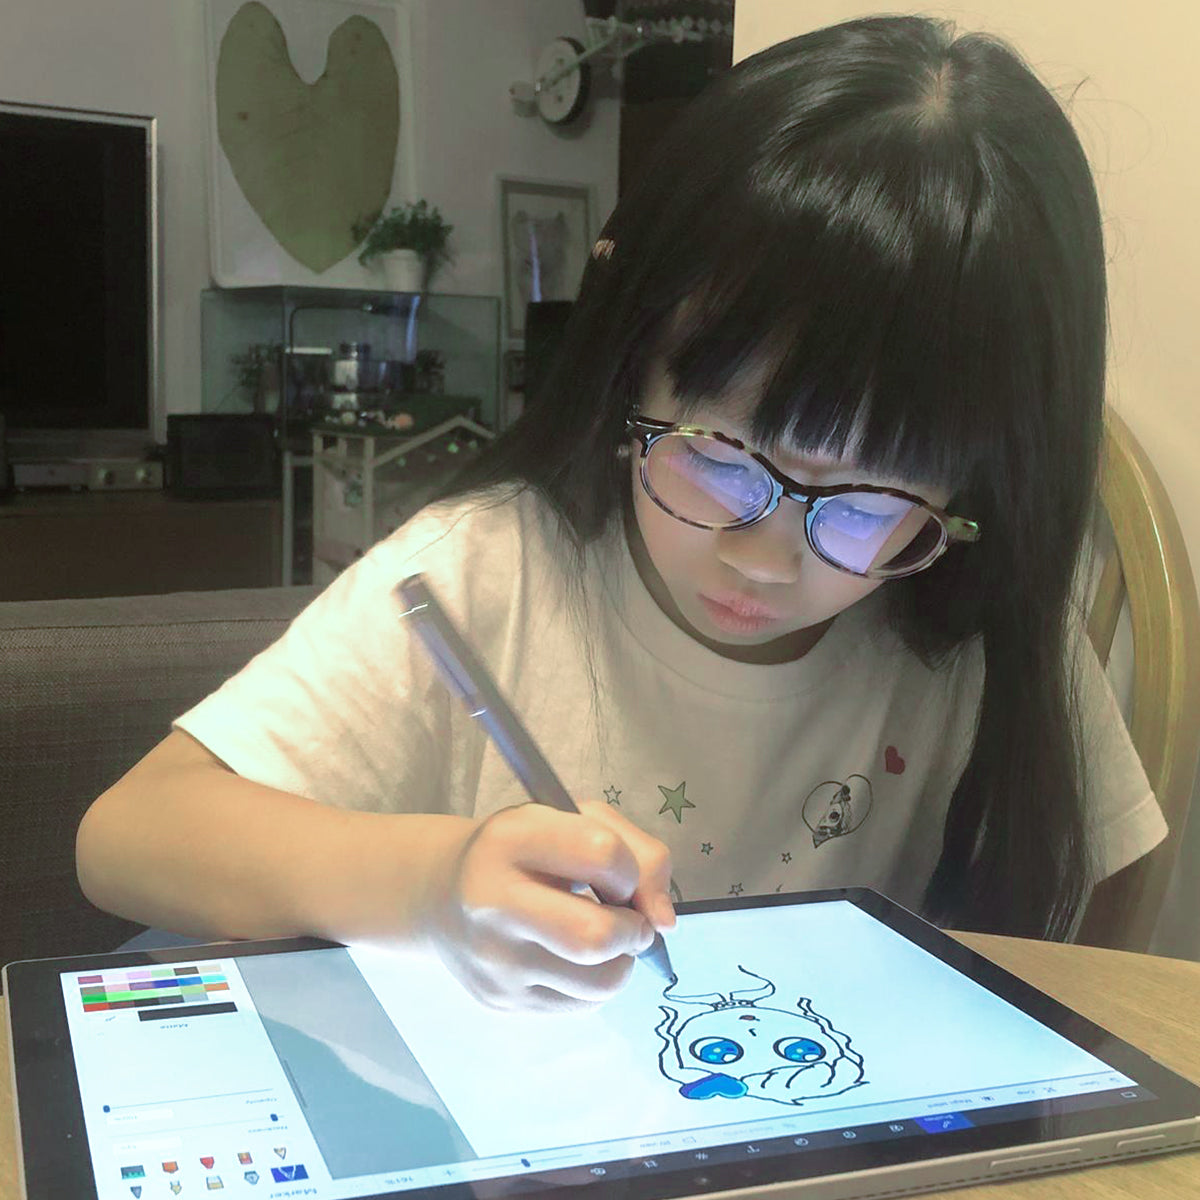 Elise Pui drawing on tablet